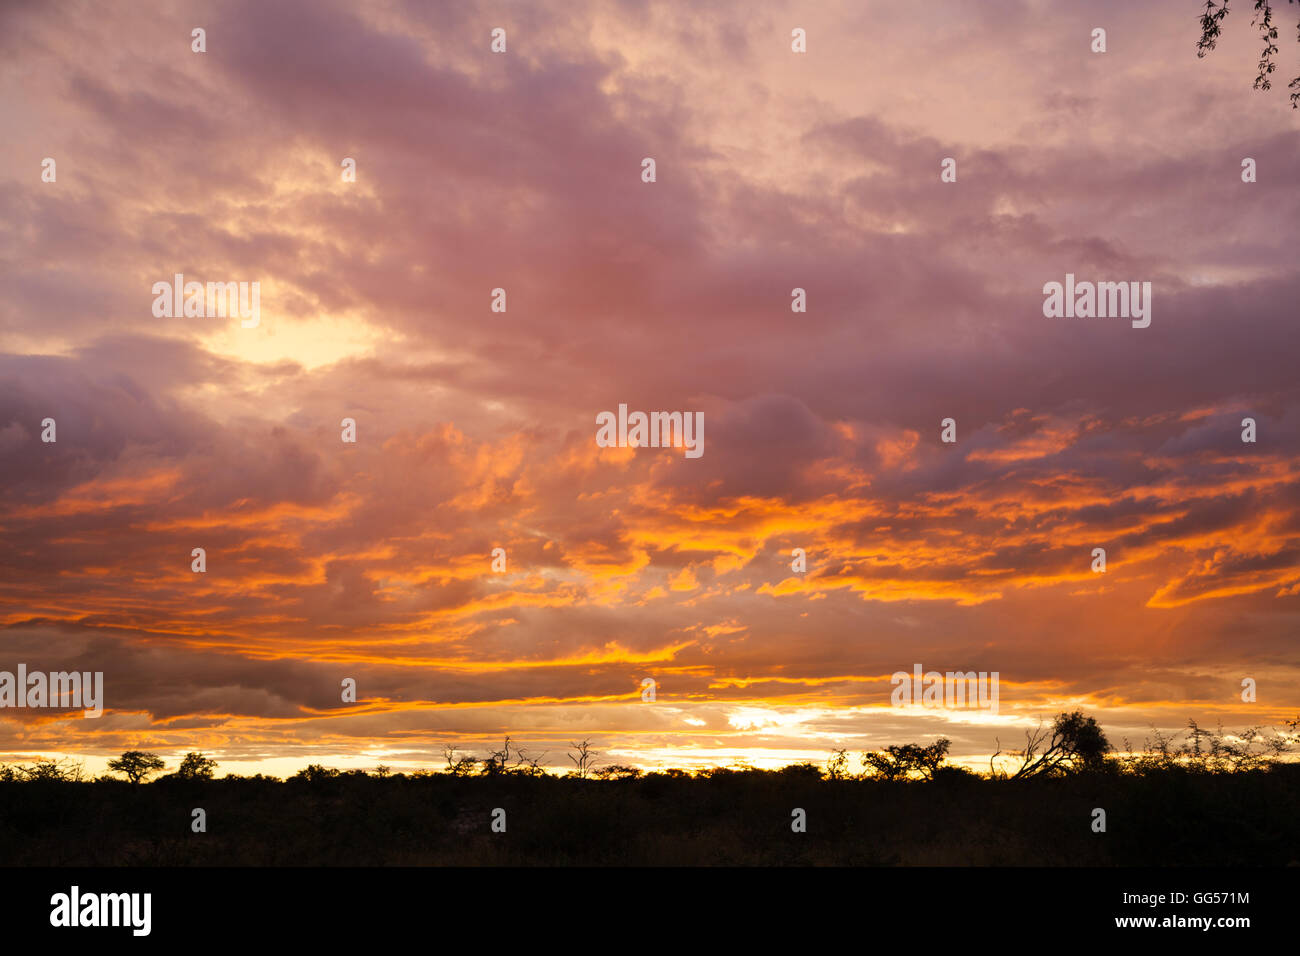 Namibia Sunset near Etosha National Park - Stock Image